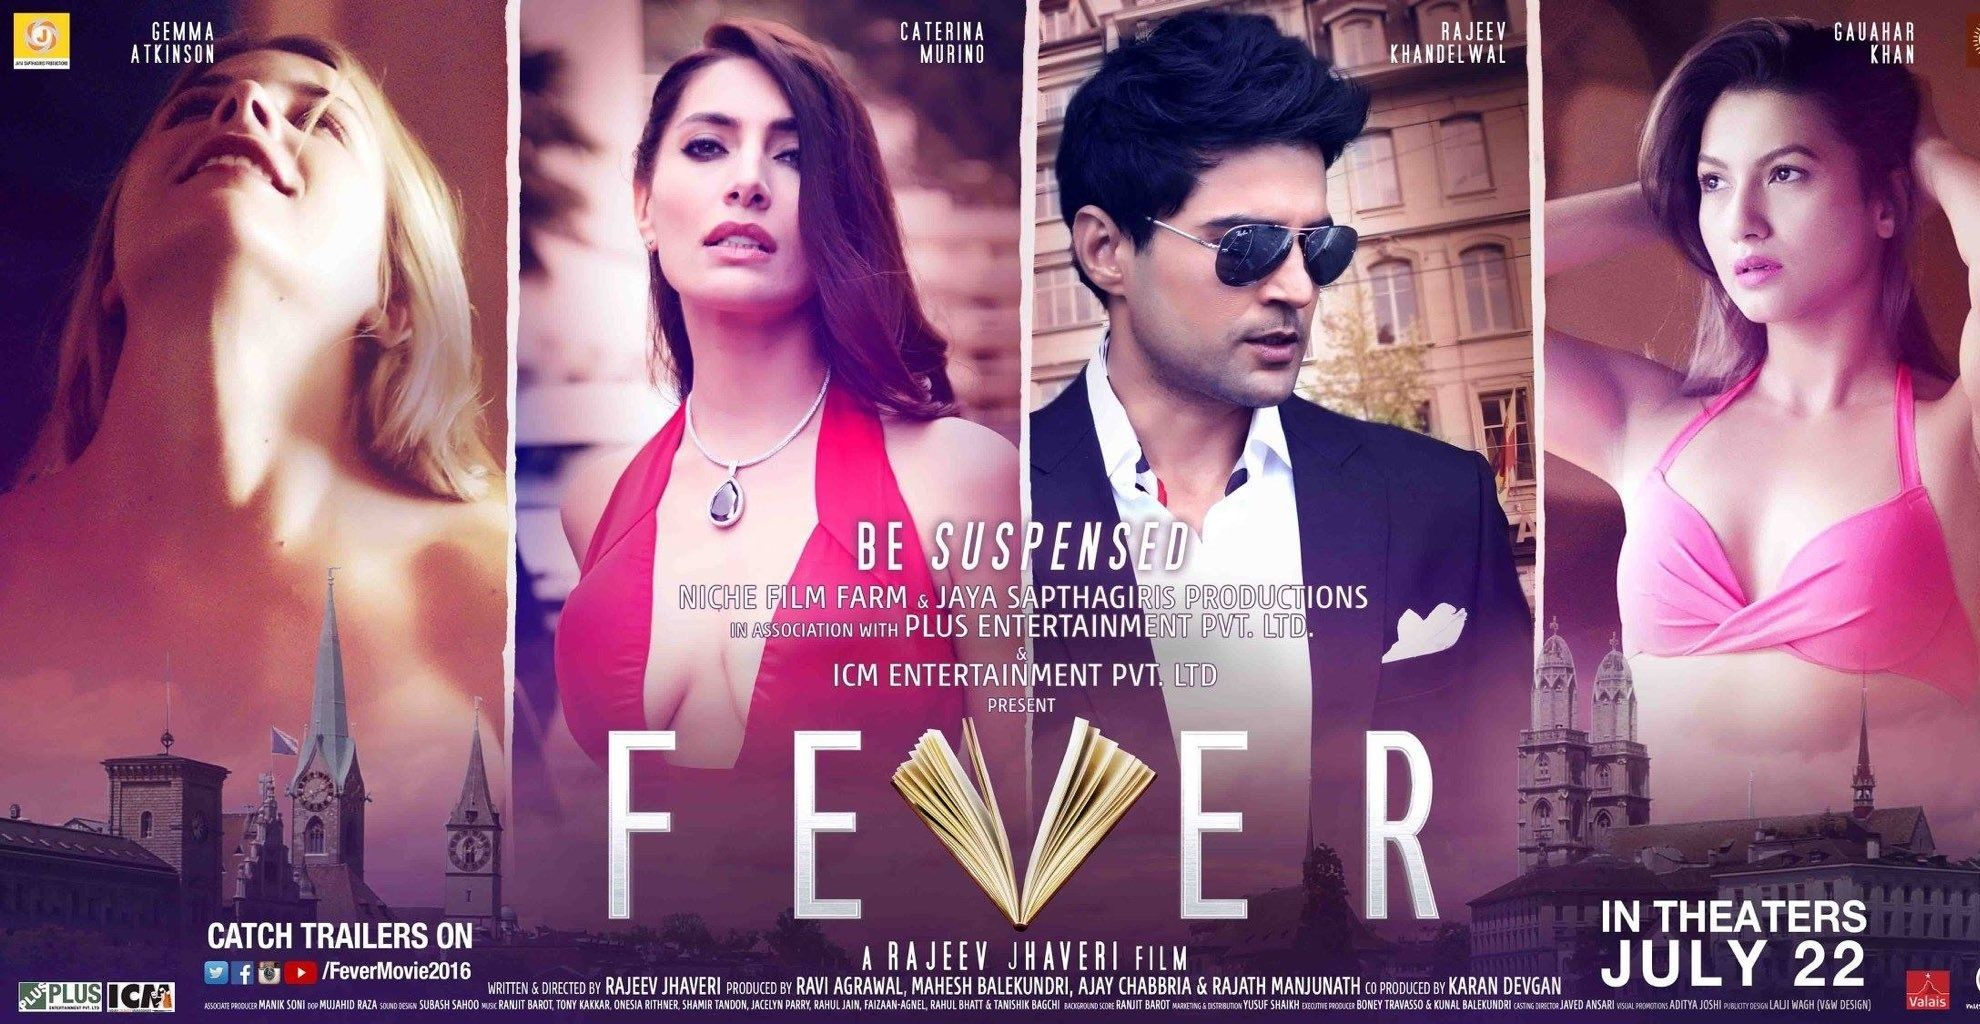 Download fever 2016 bollywood movie songs musicpunjab https download fever 2016 bollywood movie songs musicpunjab httpsmusicpunjab stopboris Gallery